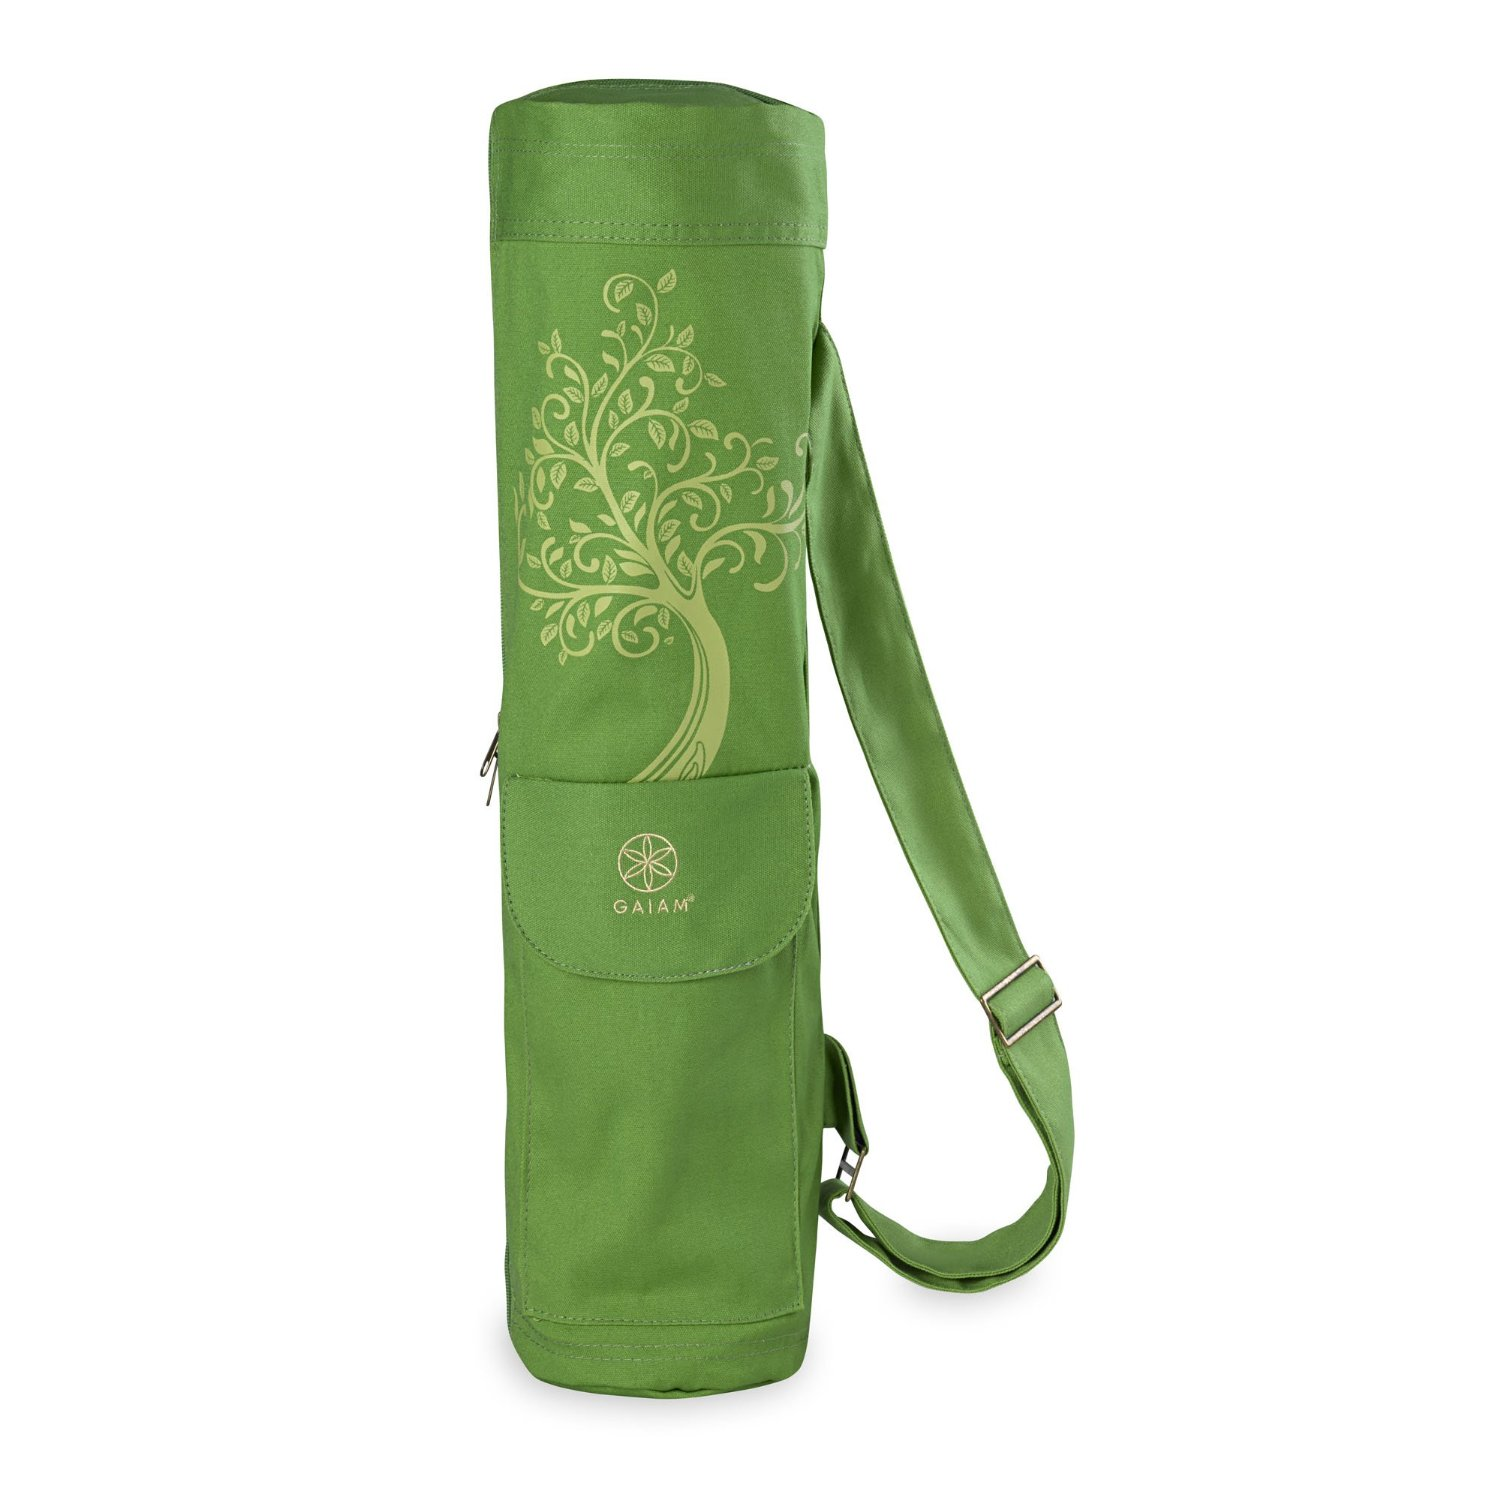 Gaiam Tree of Wisdom Yoga Mat Bag – 2 Pockets, Adjustable Cotton Sling Strap, Multiple Designs and Colors